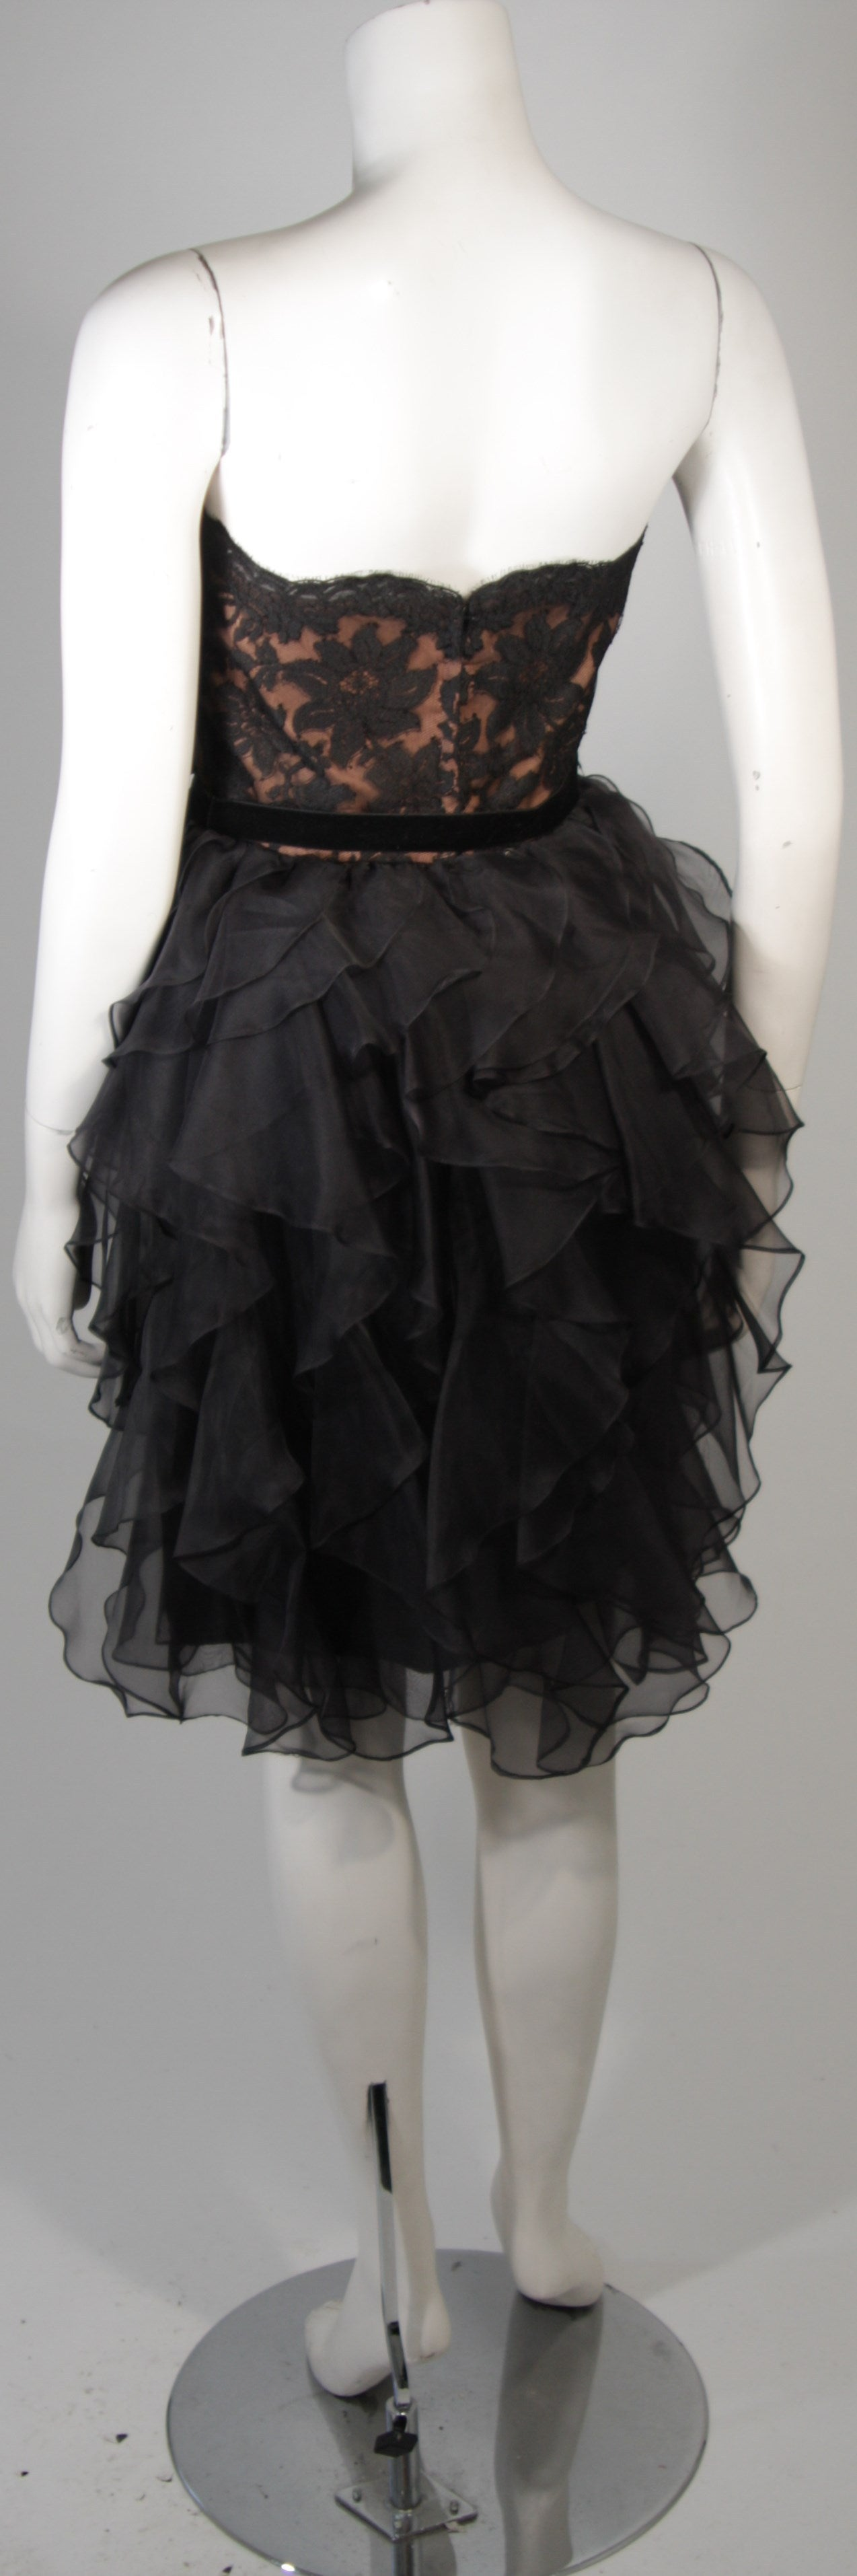 Jill Richards Black Lace Cocktail Dress with Layered Silk Skirt Size 6 For Sale 3